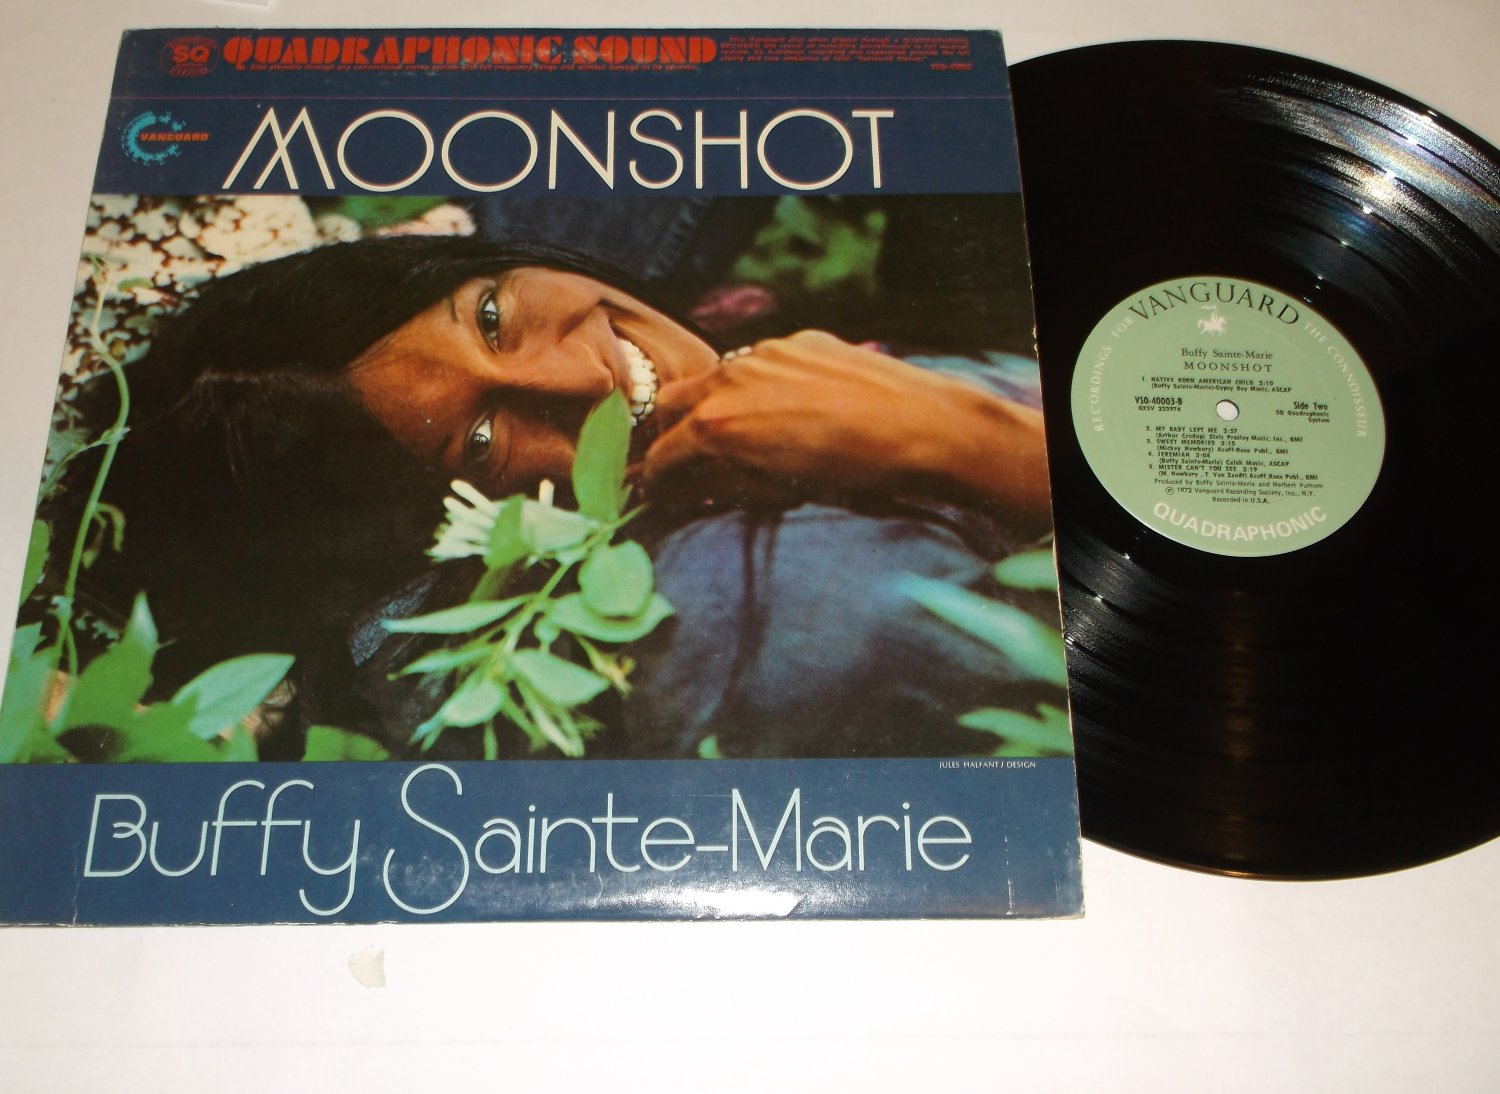 The Best Of Buffy Sainte-Marie - Moonshot - VANGUARD 40003  Folk Quad Records  LP